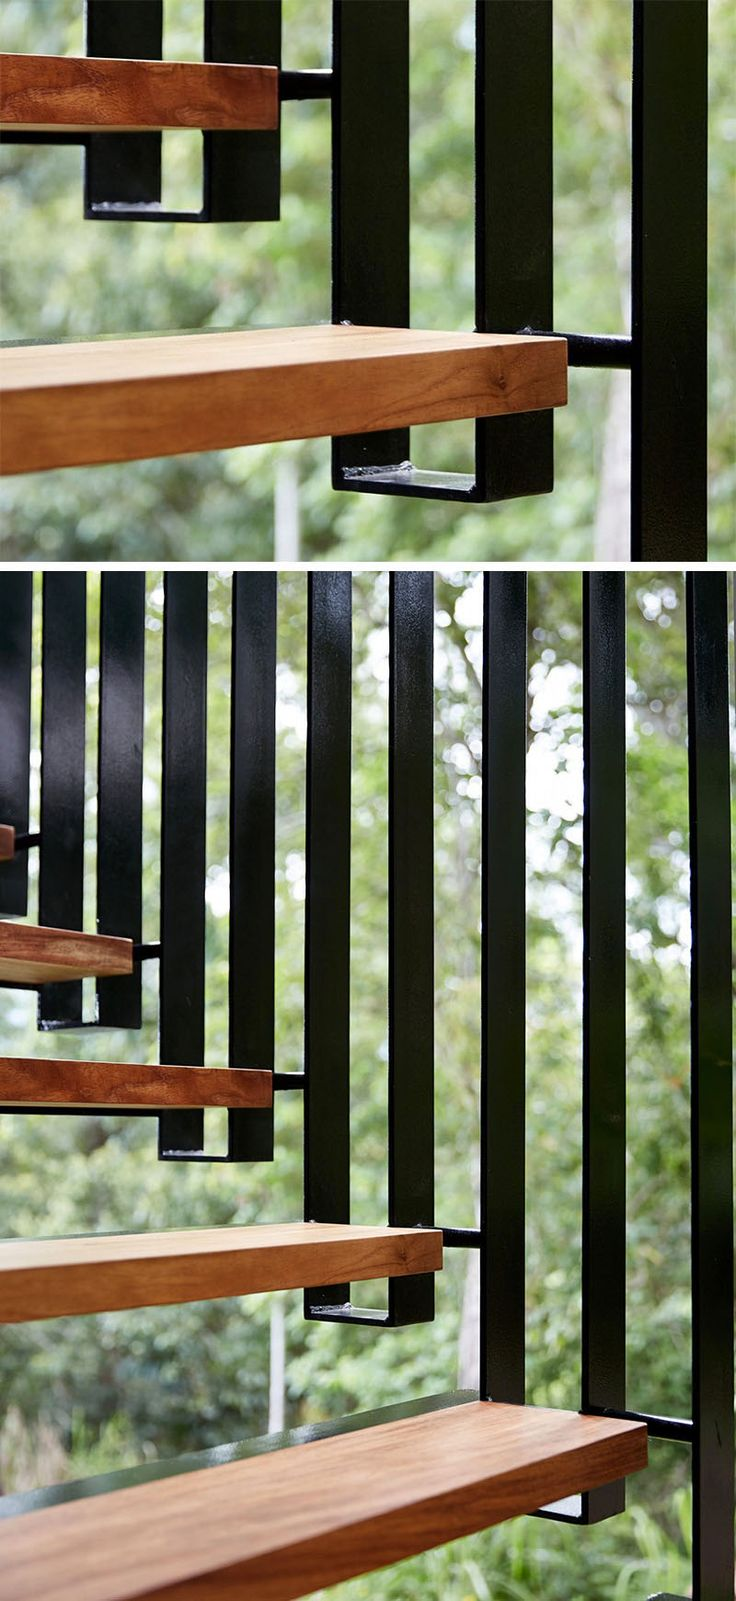 18 Examples Of Stair Details To Inspire You // Thin treads and a unique black steel railing add an interesting element to this tropical home.